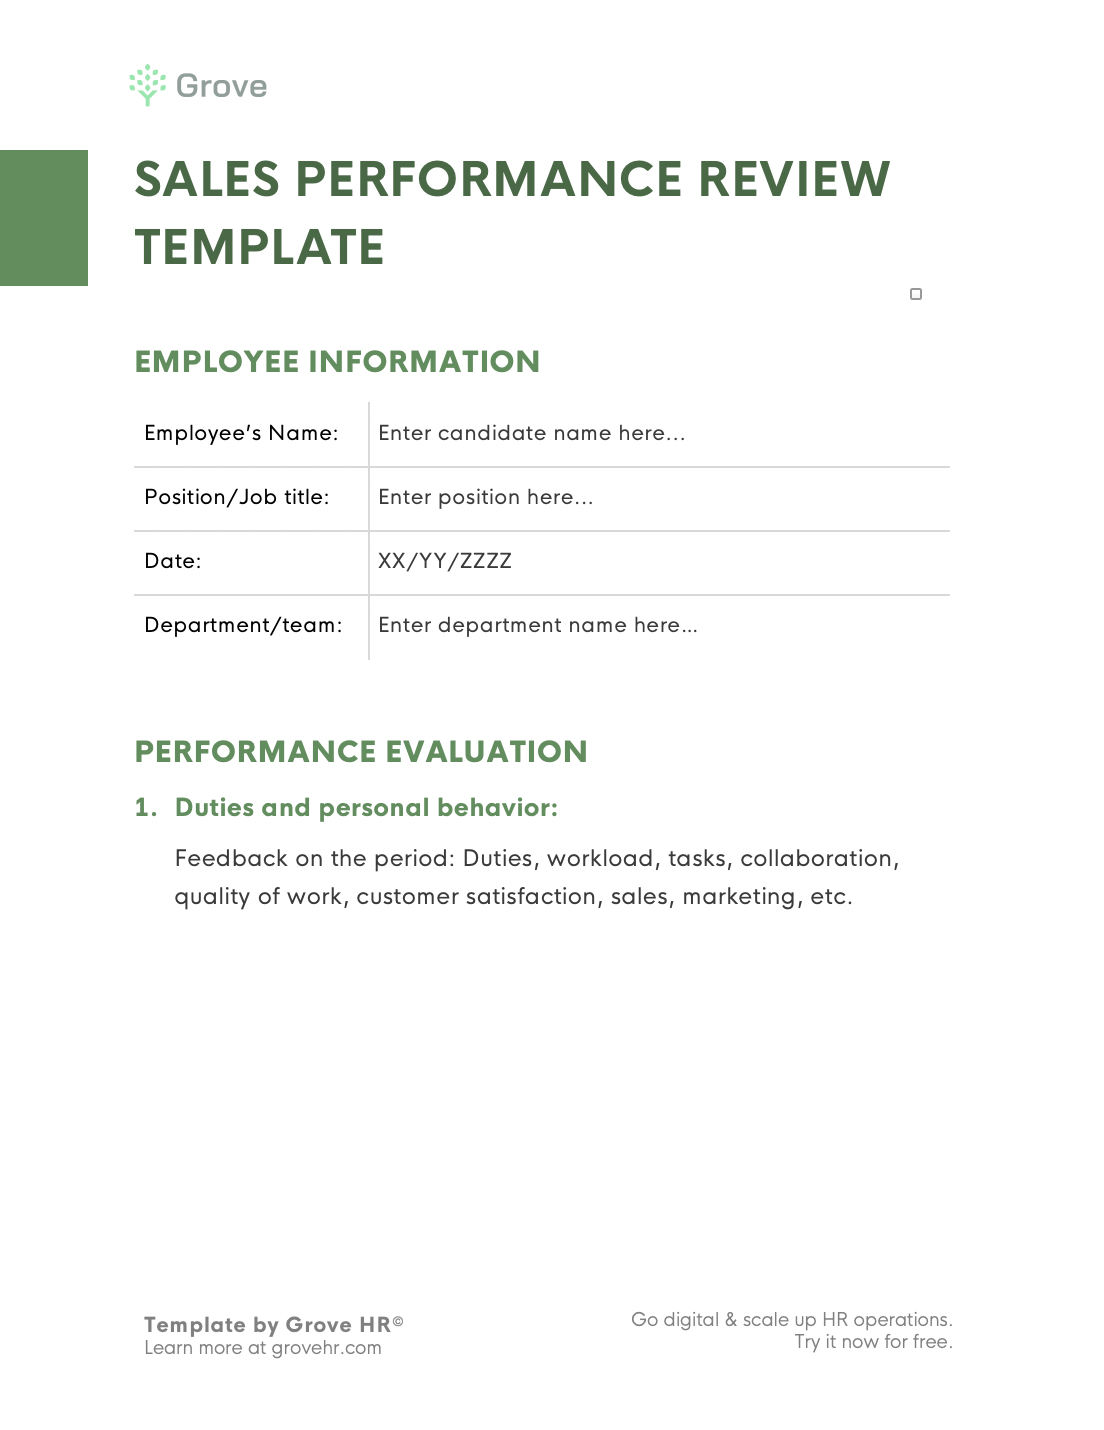 Grove HR - Sales performance review template slider 2